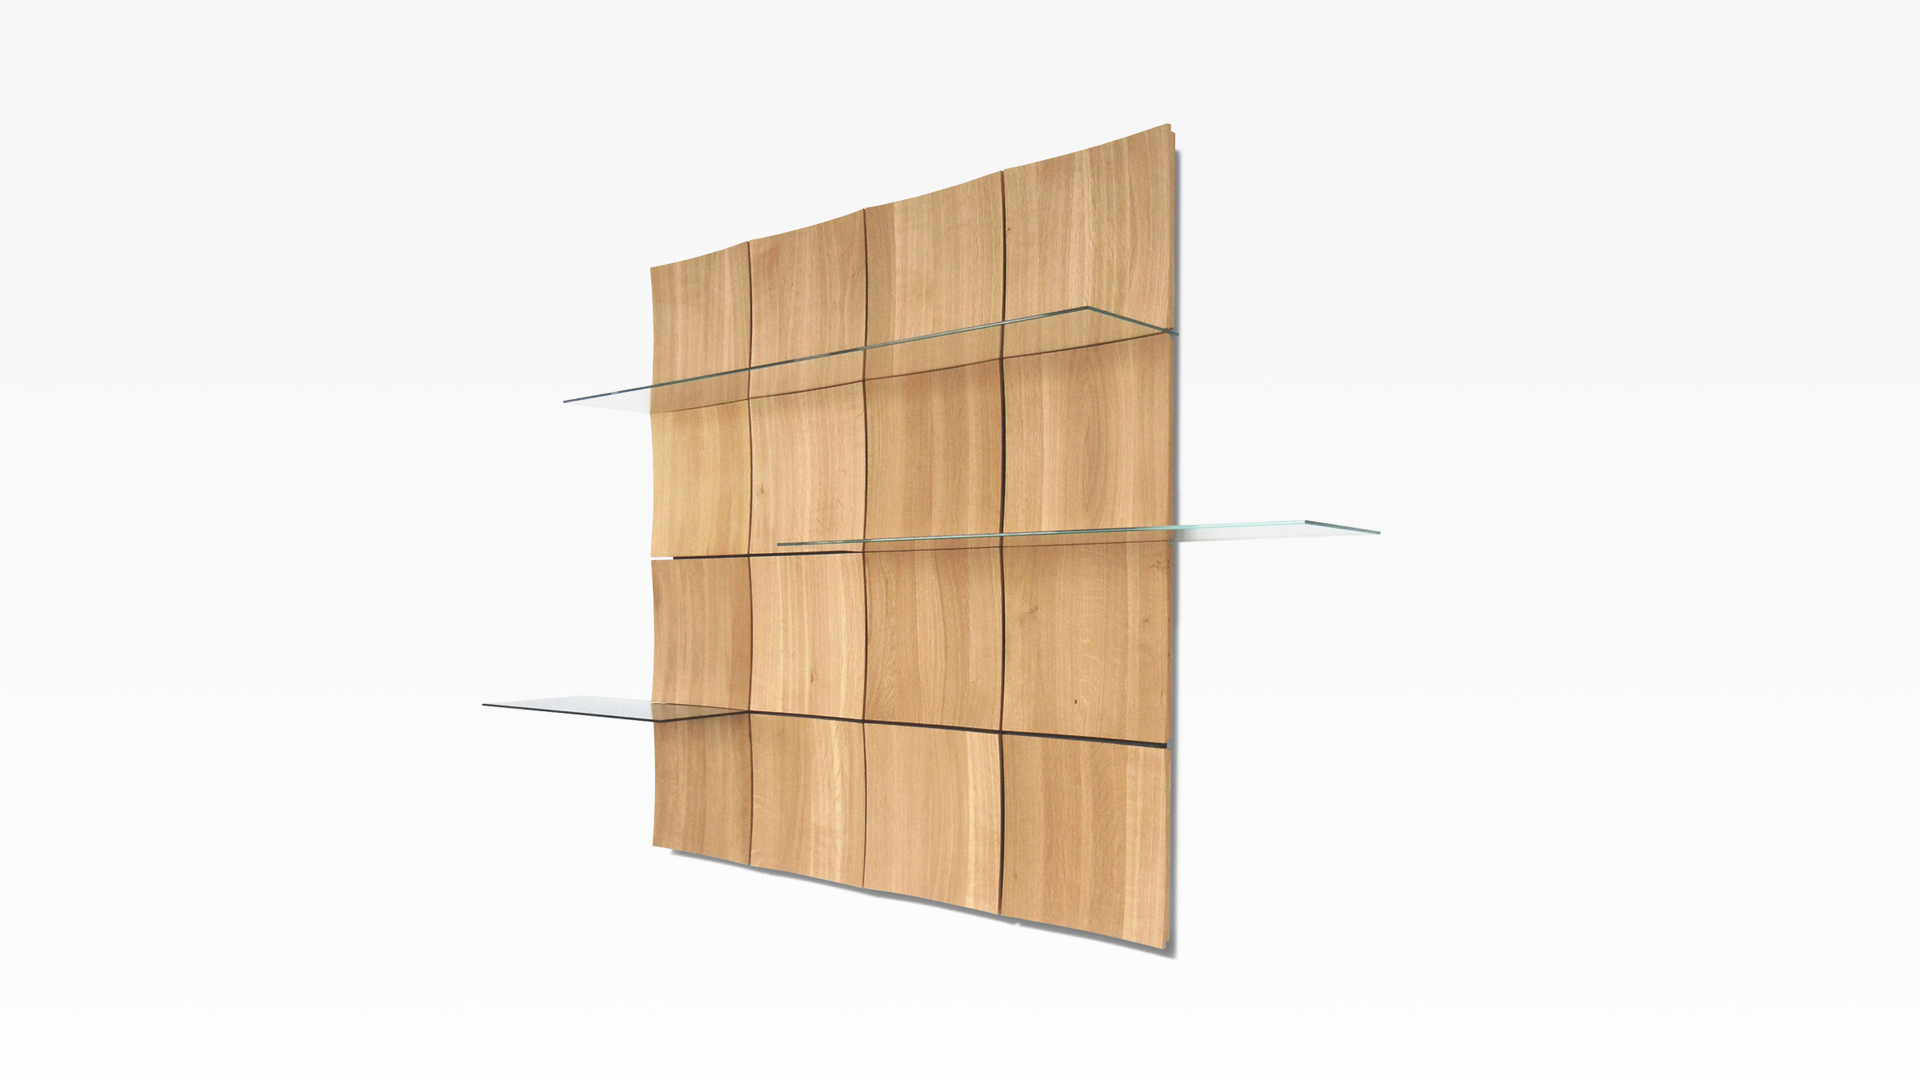 Regal Shelfy Rs01 Nami Regal Modulares Regal Modular Shelf